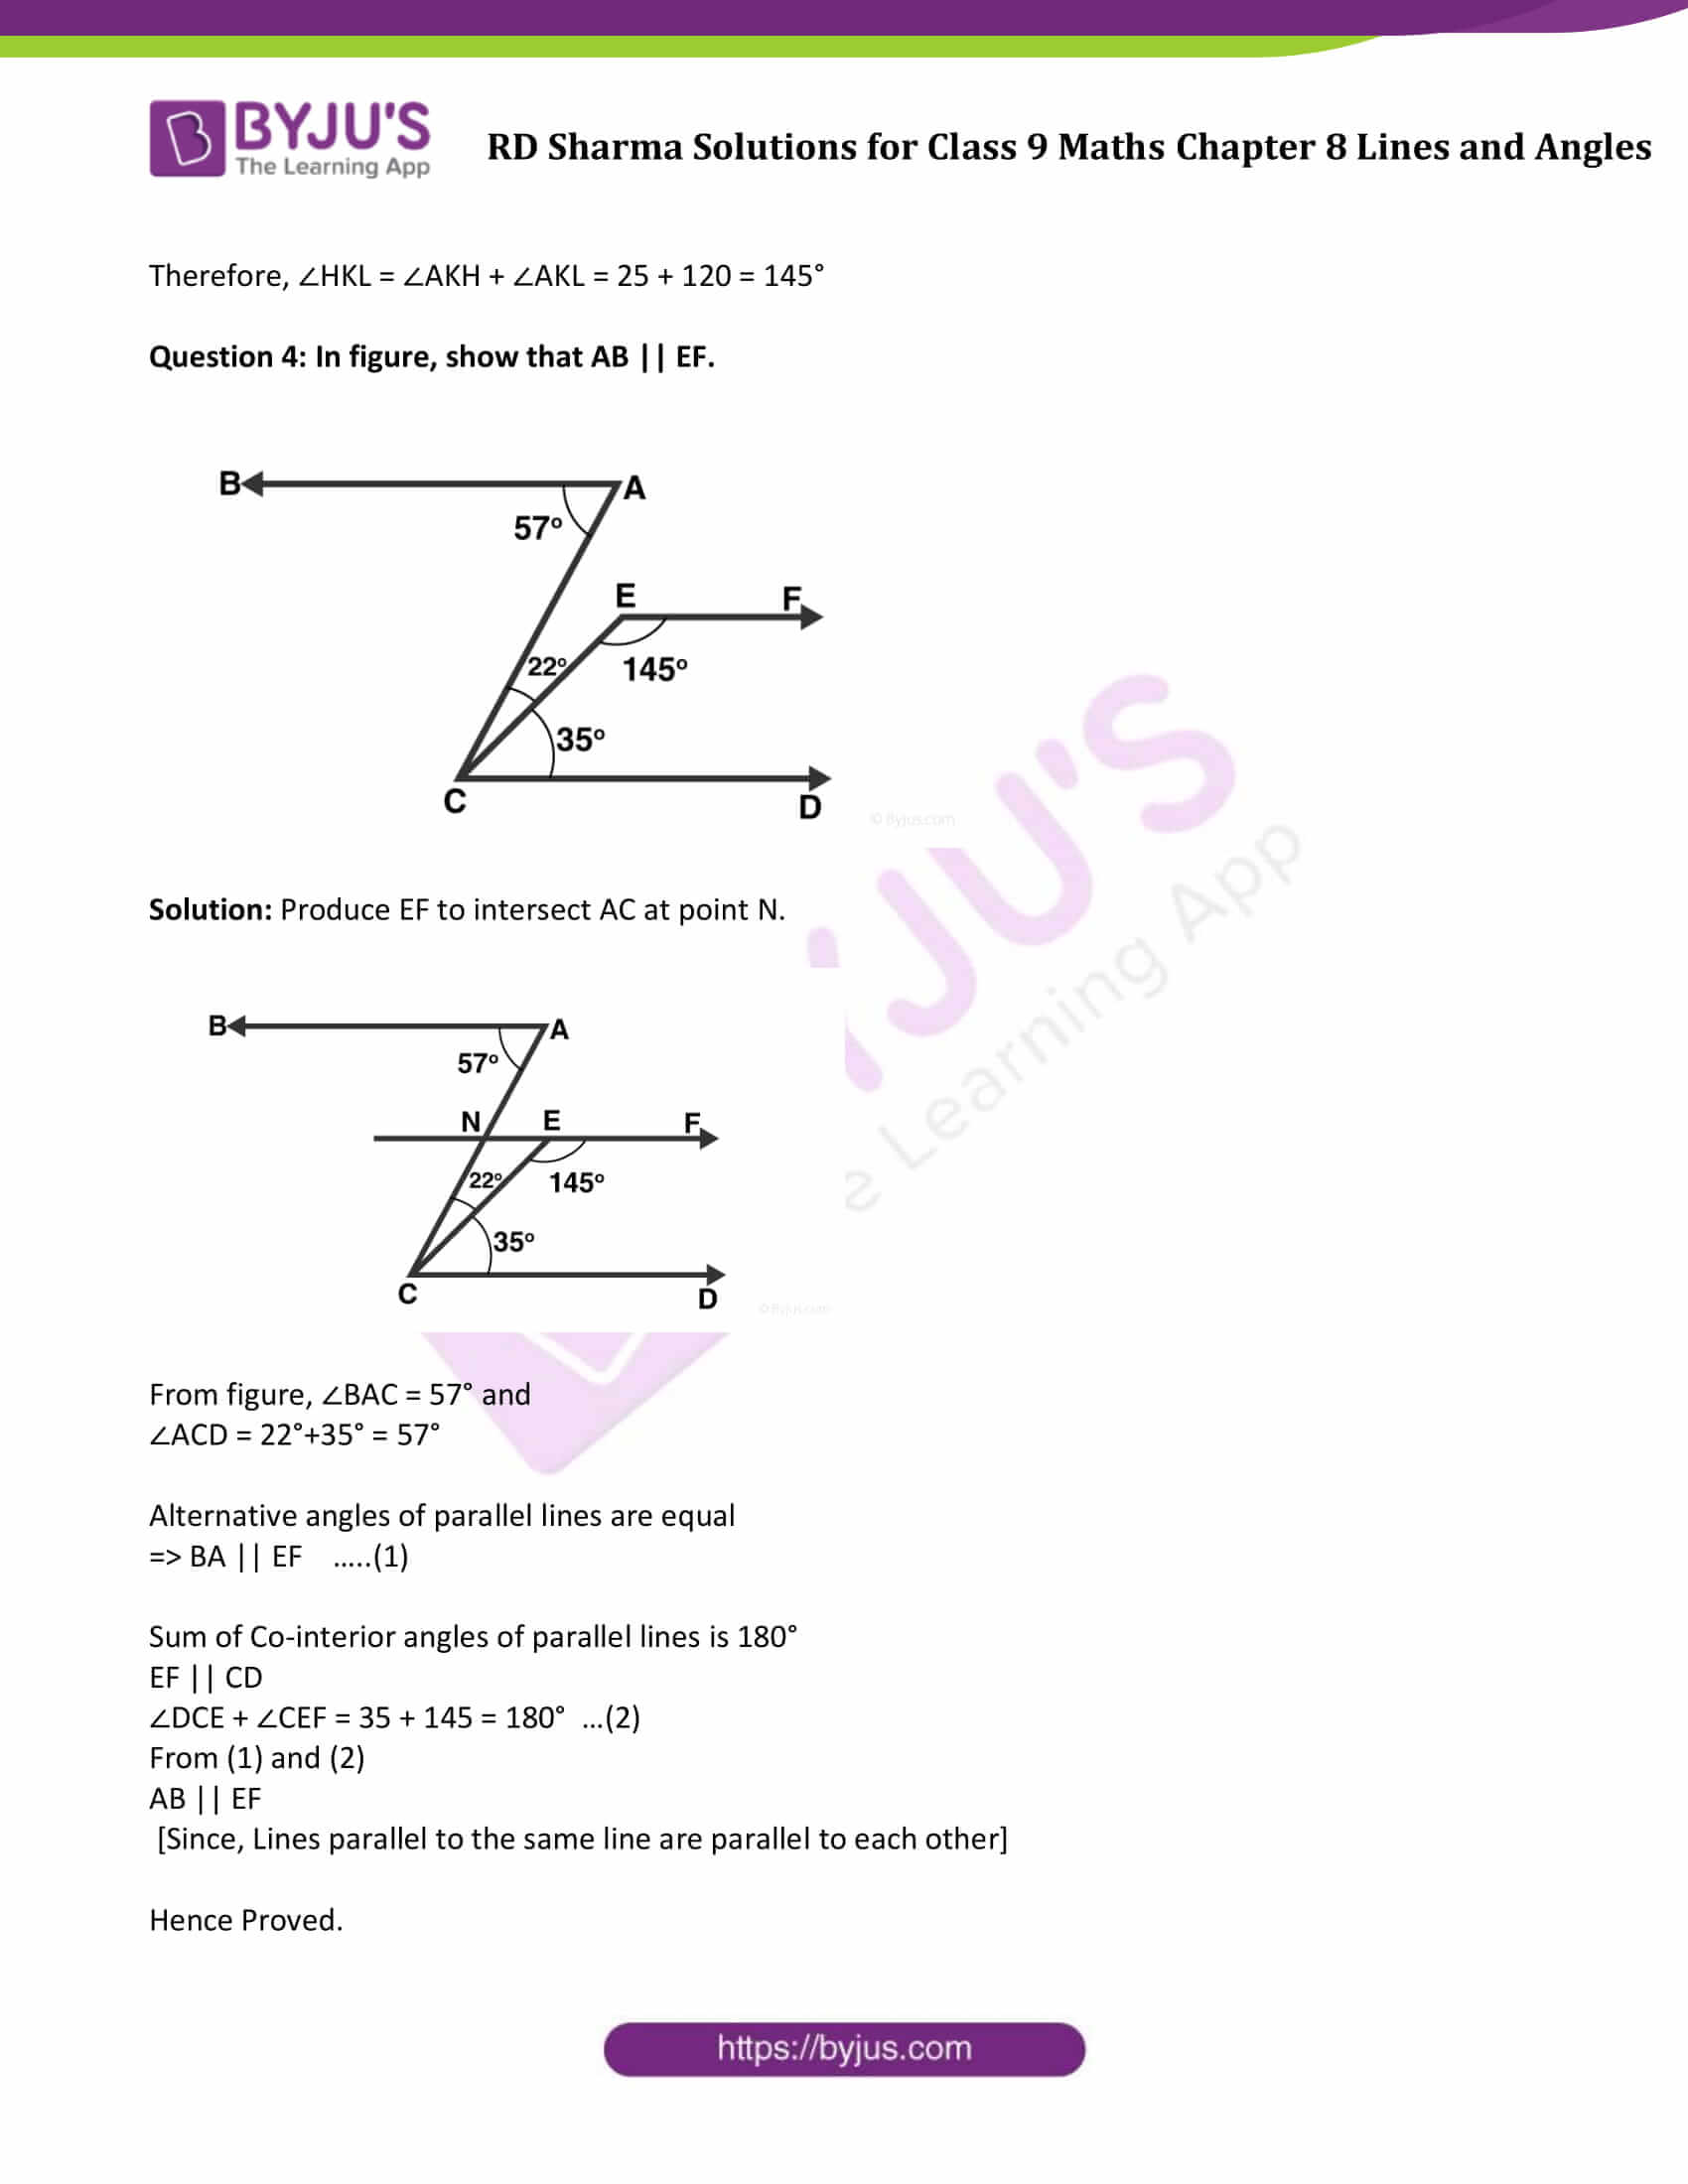 RD Sharma Solution class 9 Maths Chapter 8 Lines and Angles 19